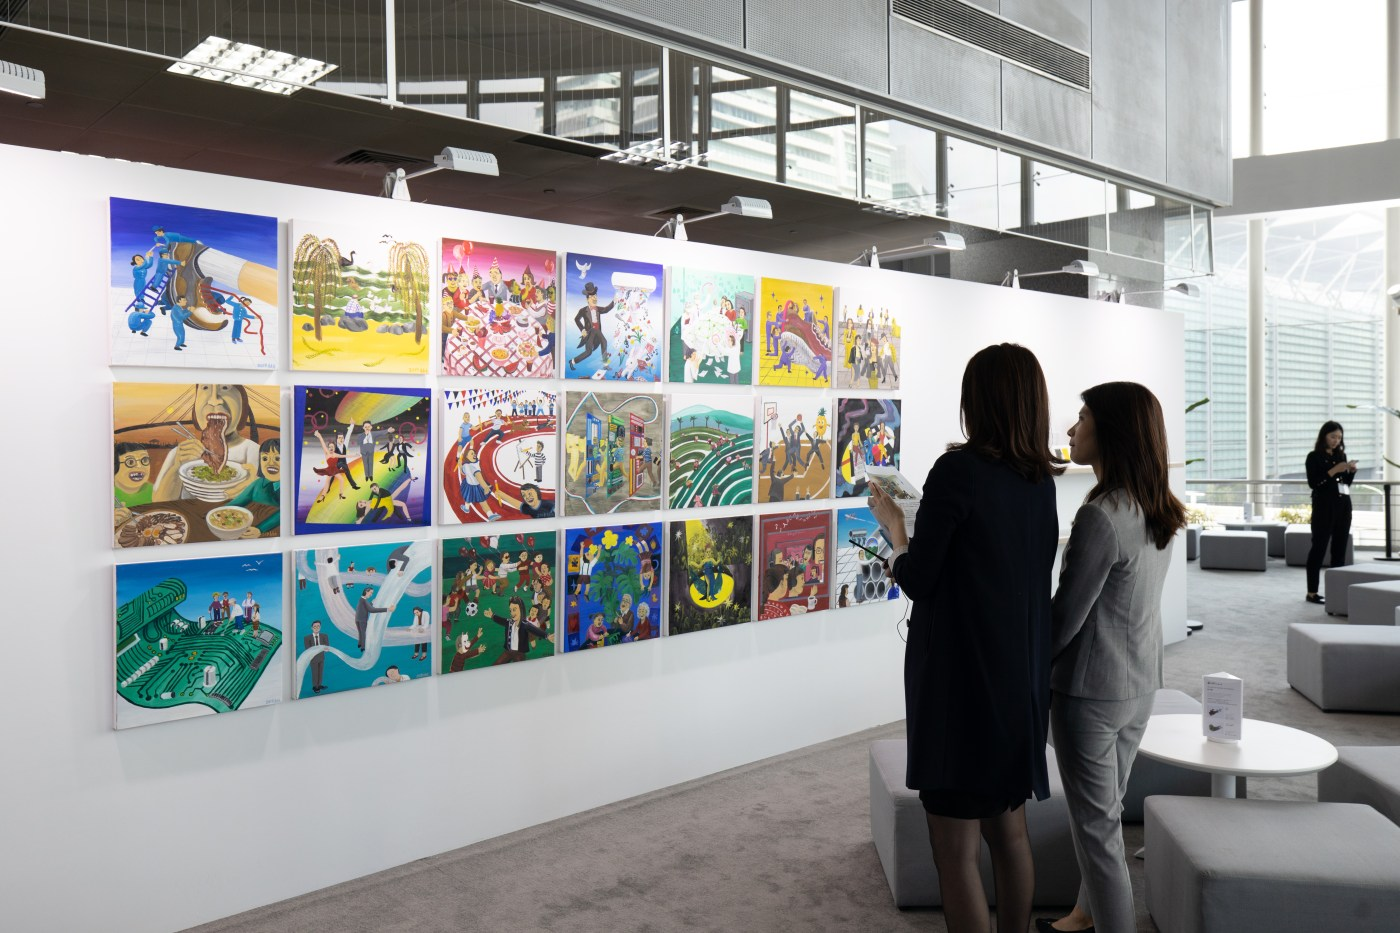 Installation view of UBS-commissioned work by Huang Hai Hsin presented at the UBS VIP Lounge,Taipei Dangdai 2020.